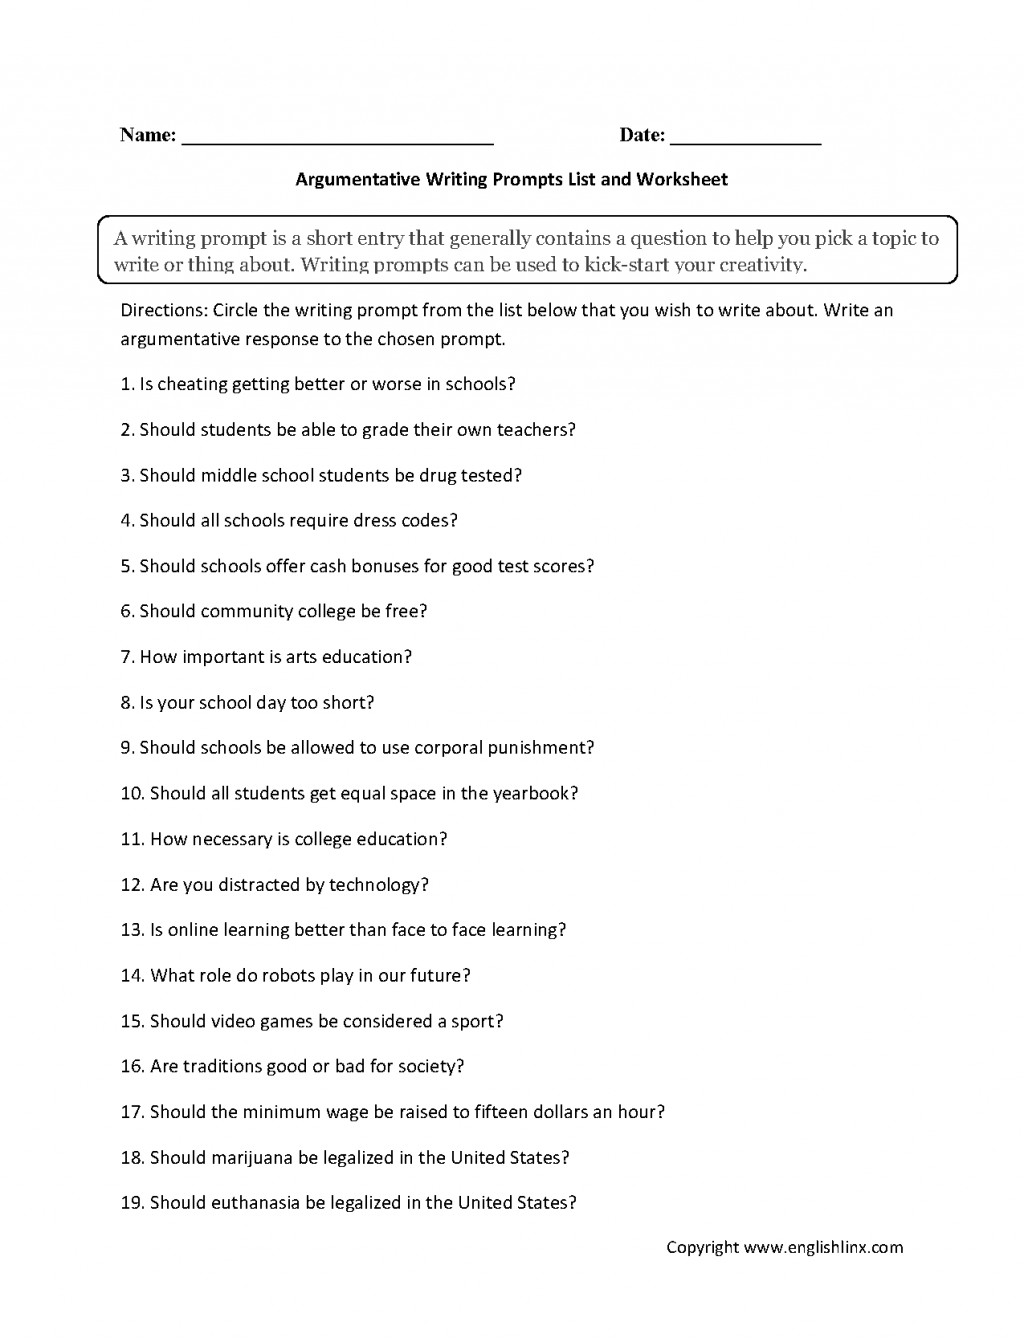 011 Essay Example Argumentative Writing Prompts List Worksheet Sports Impressive Topics Medicine About Youth Large